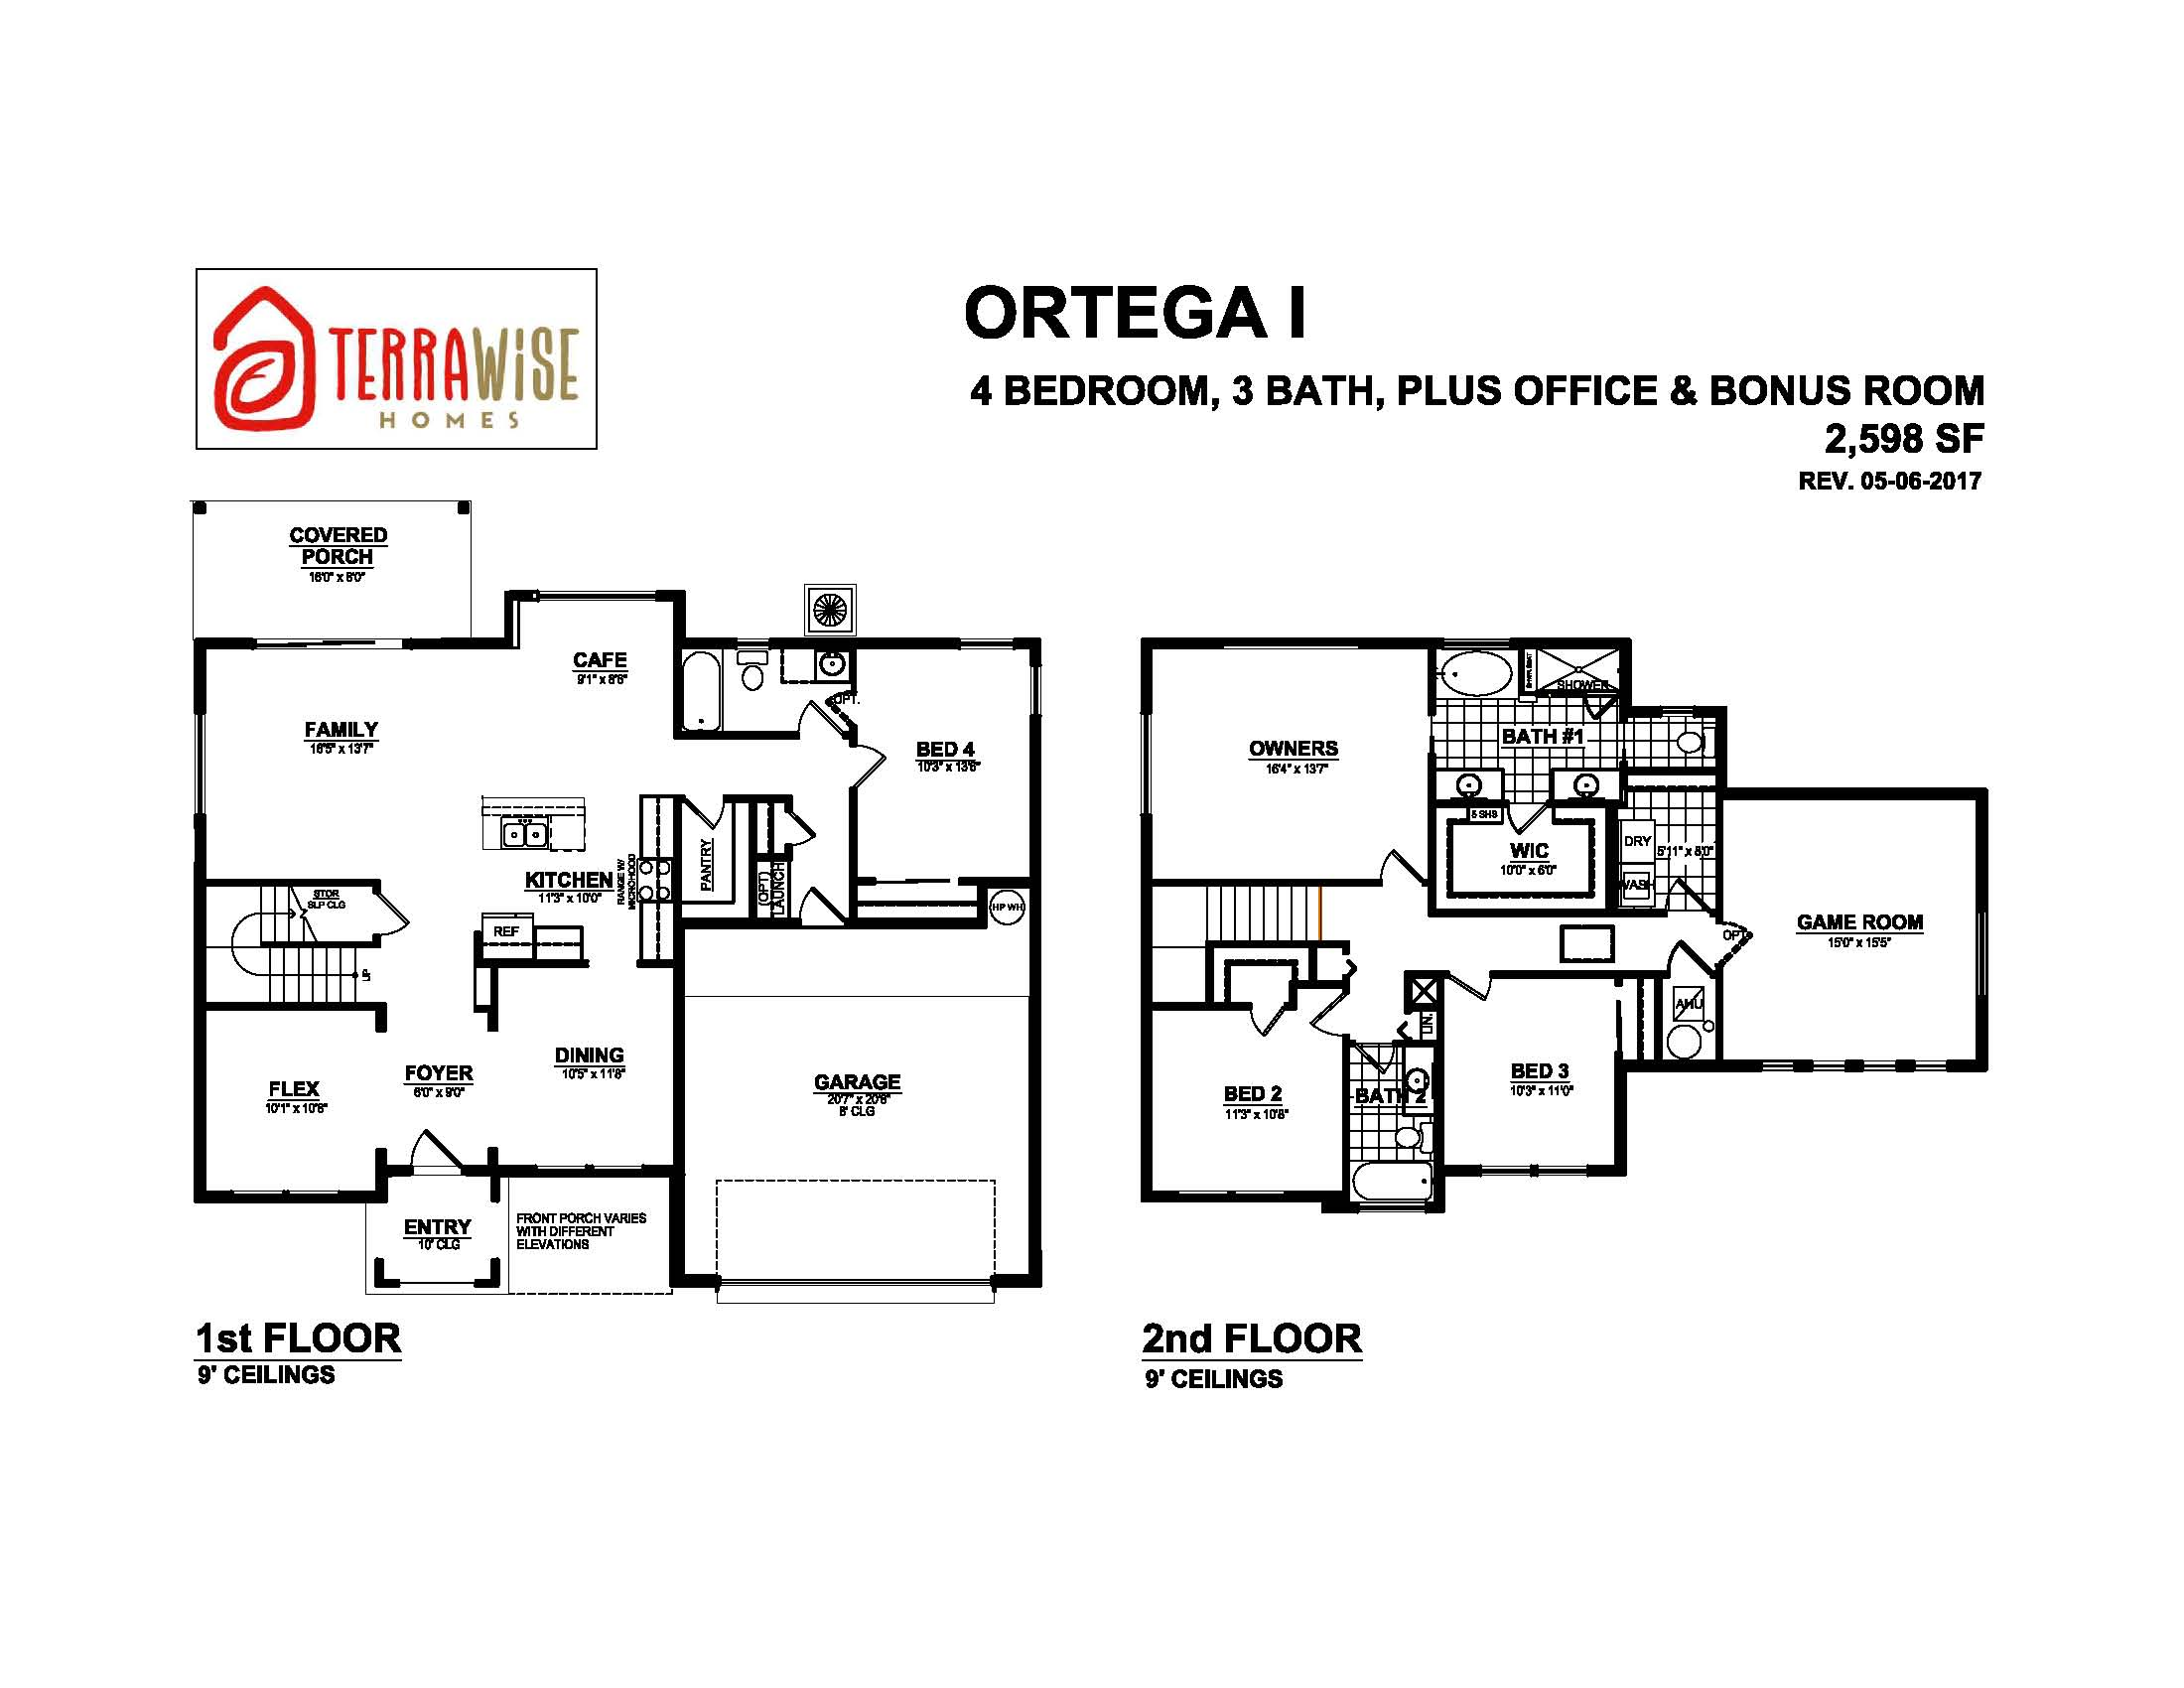 TerraWise-Homes-Plans-Floorplan-Ortega-2598sf-2017-0507